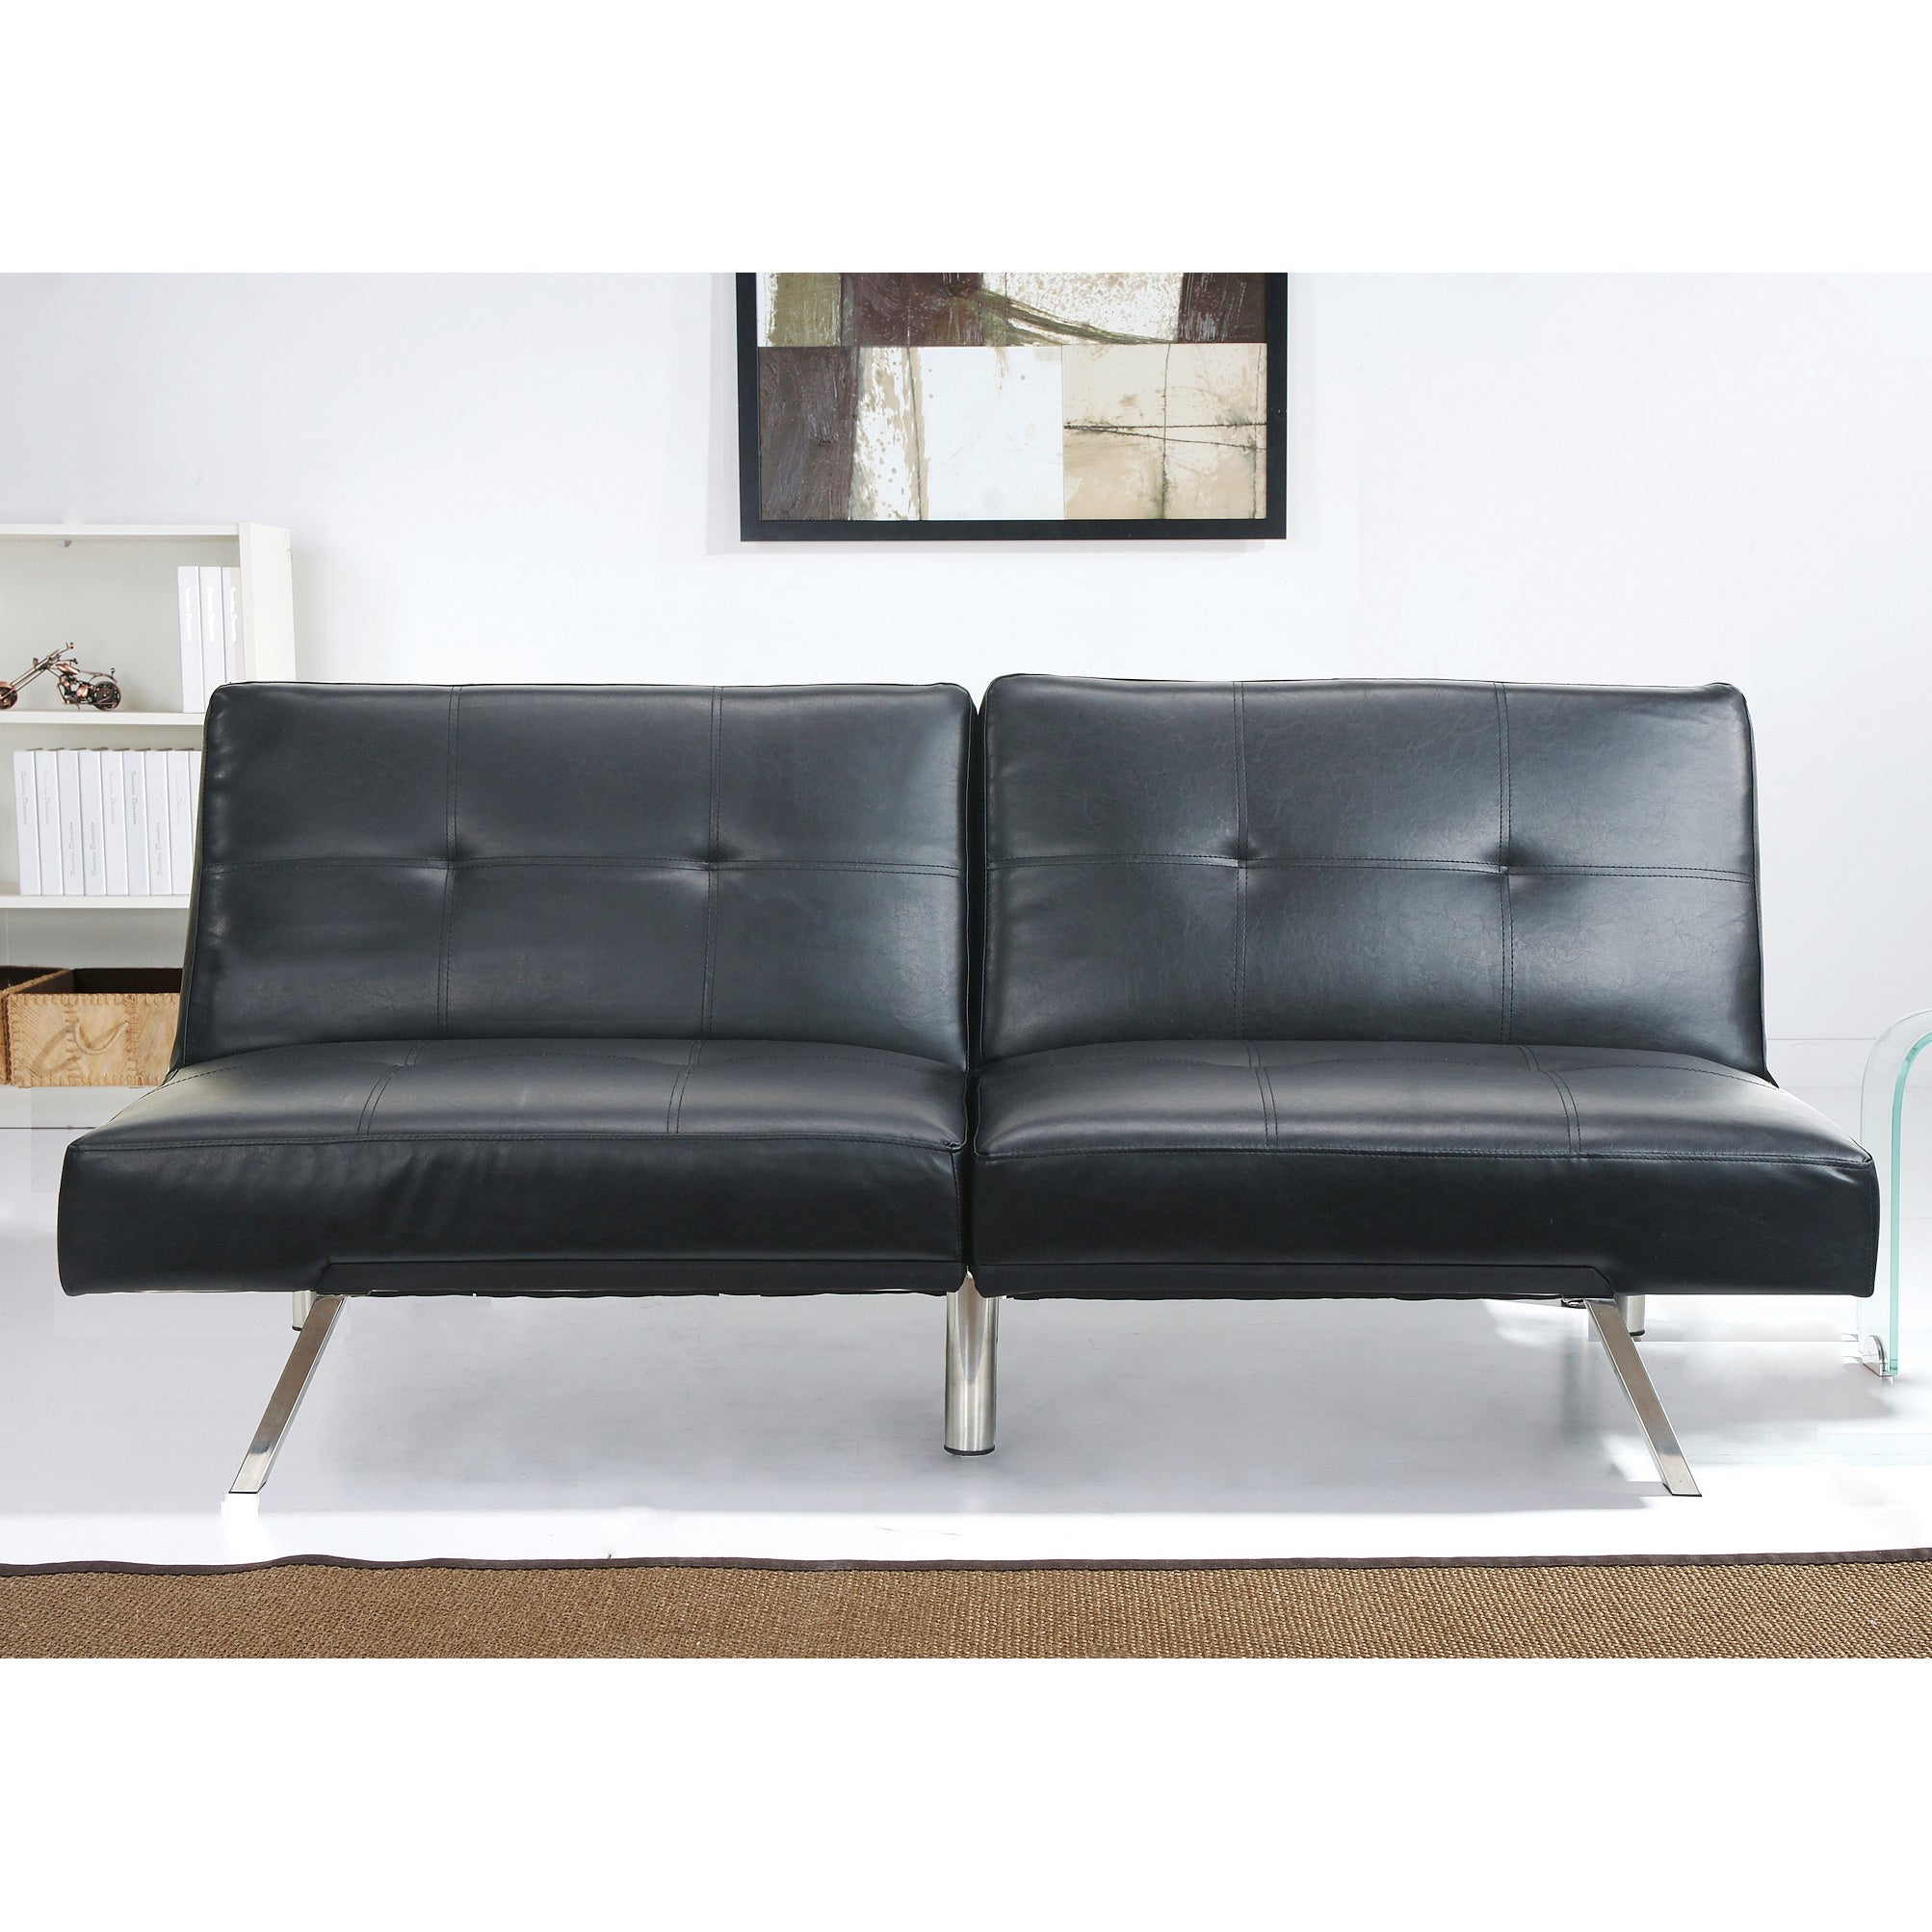 Black Leather Futon Sofa Bed 2006 x 2006